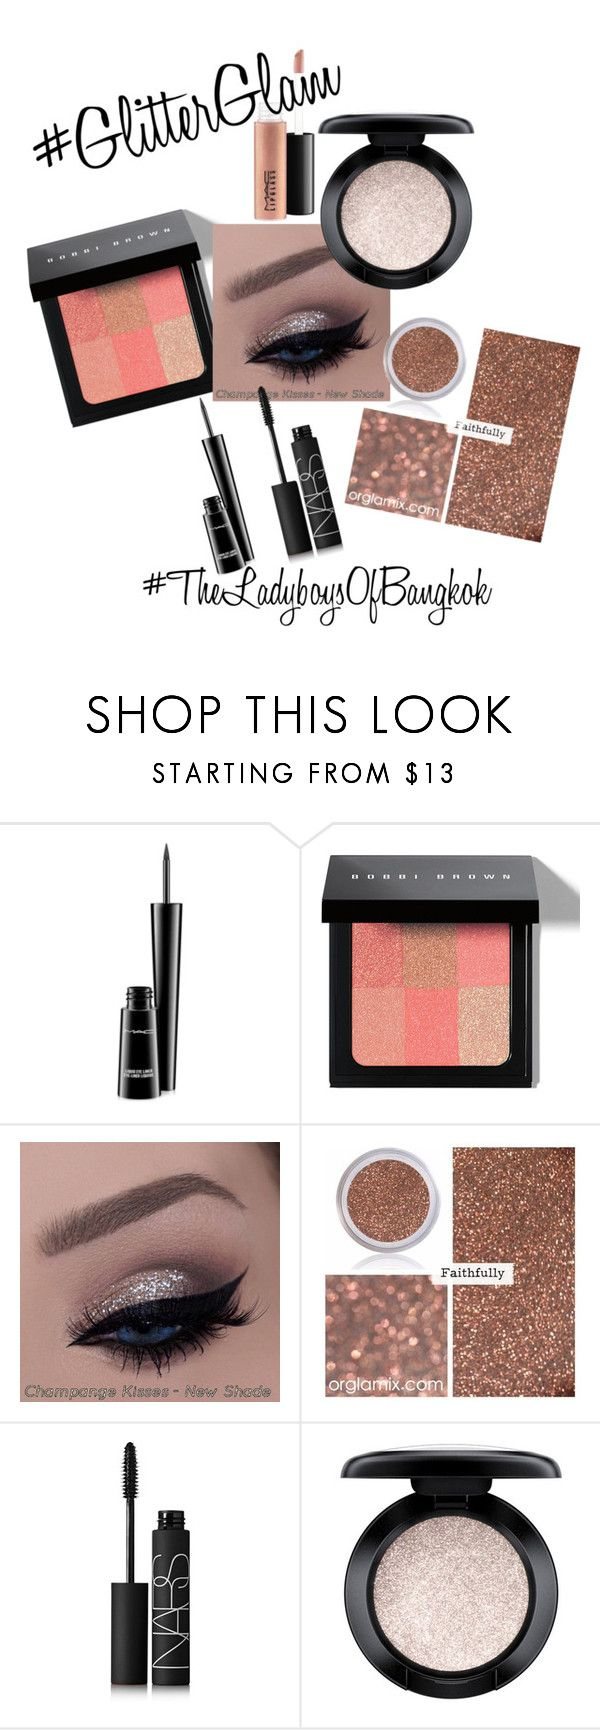 Get the #Glitz look! by theladyboys on Polyvore featuring beauty, Bobbi Brown Cosmetics, MAC Cosmetics, NARS Cosmetics, glitterglam and LadyBoys